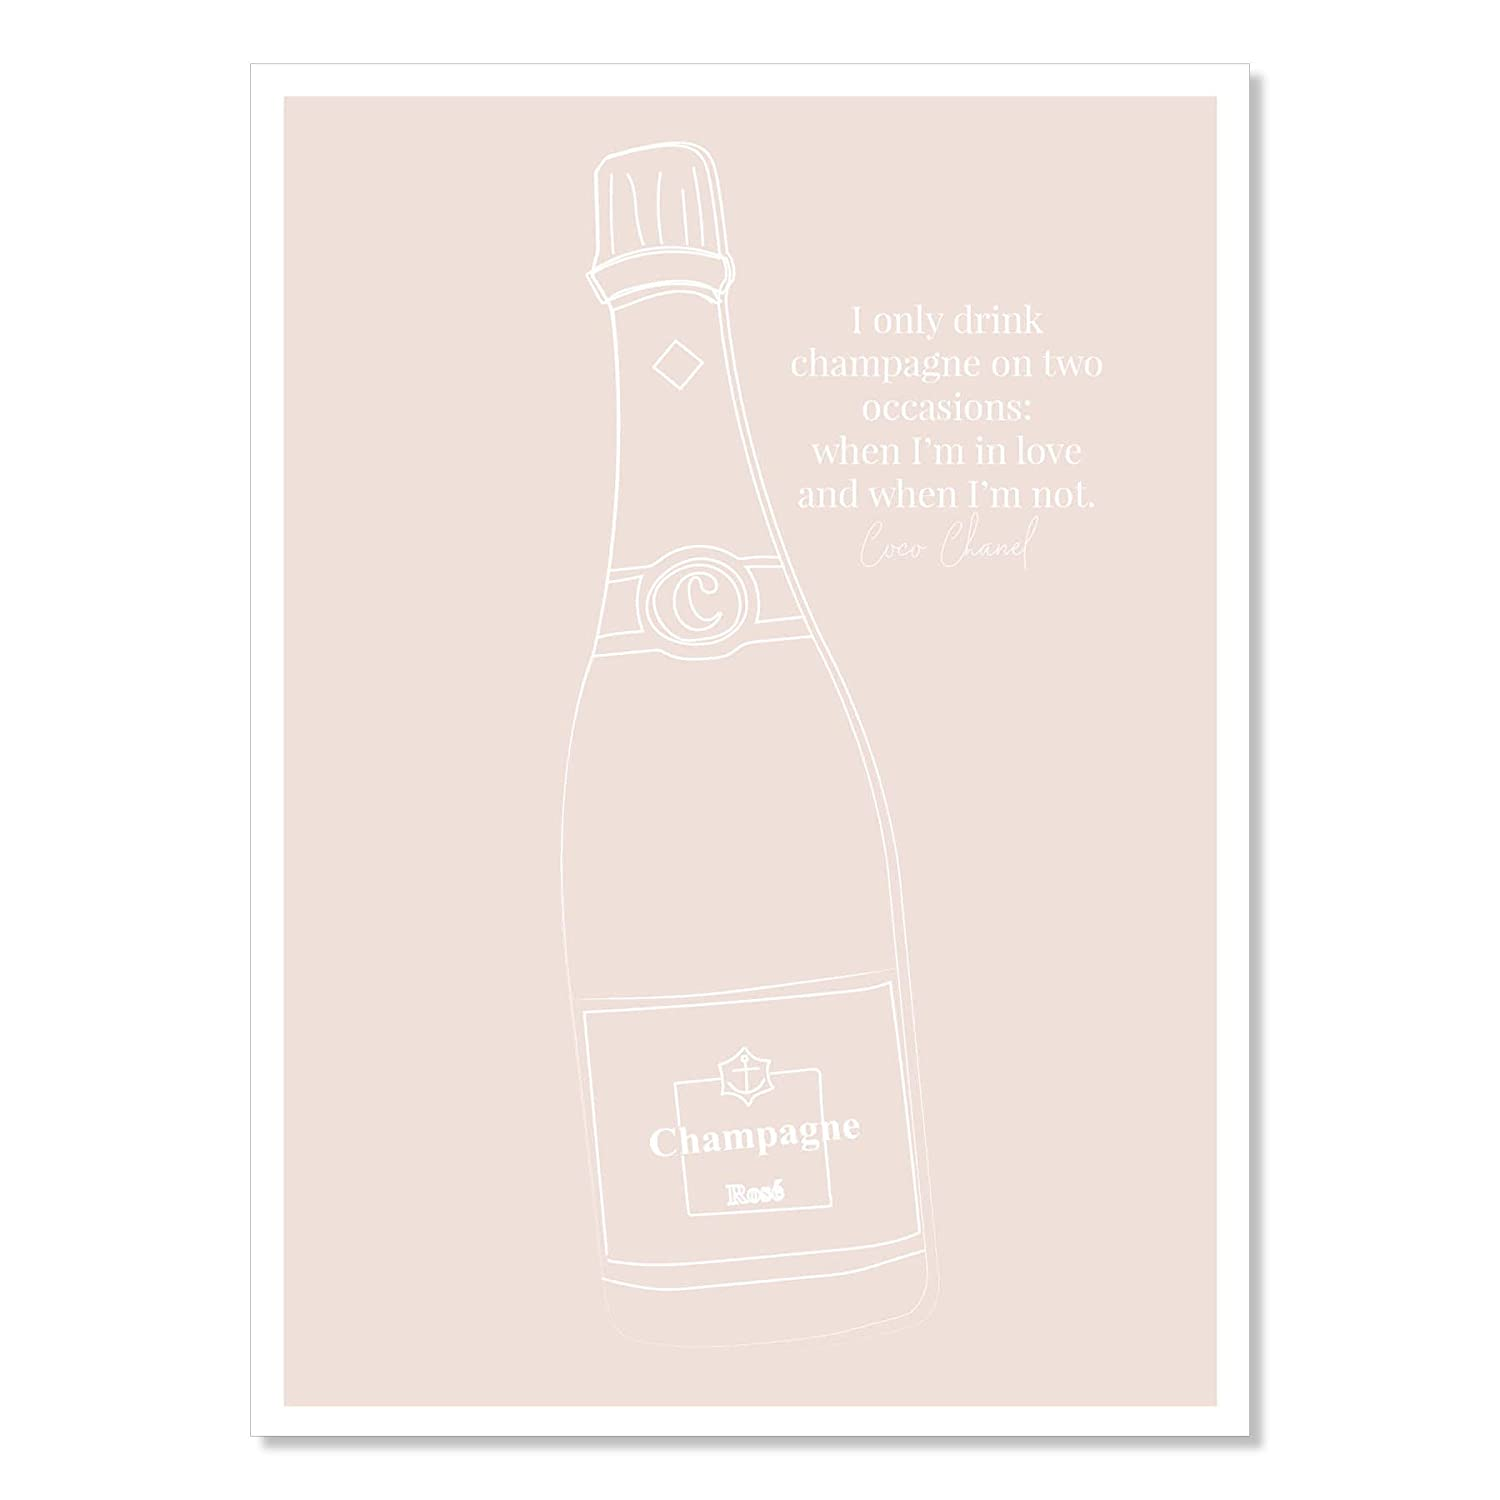 I only drink champagne Popular product on two occasions and Max 43% OFF whe when in I'm love